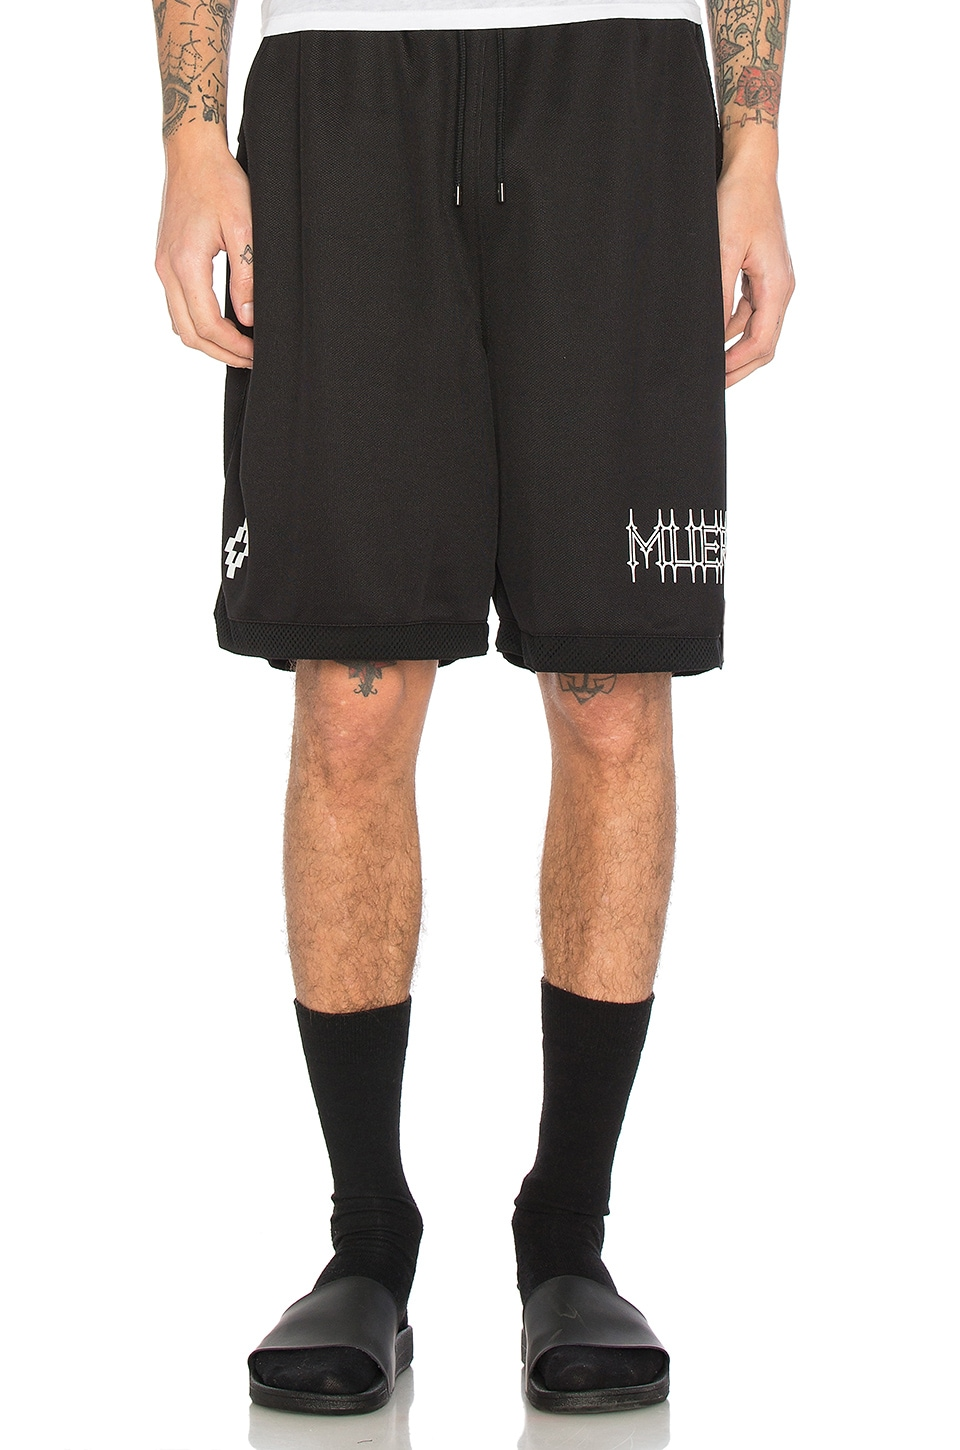 Orlando Shorts by Marcelo Burlon